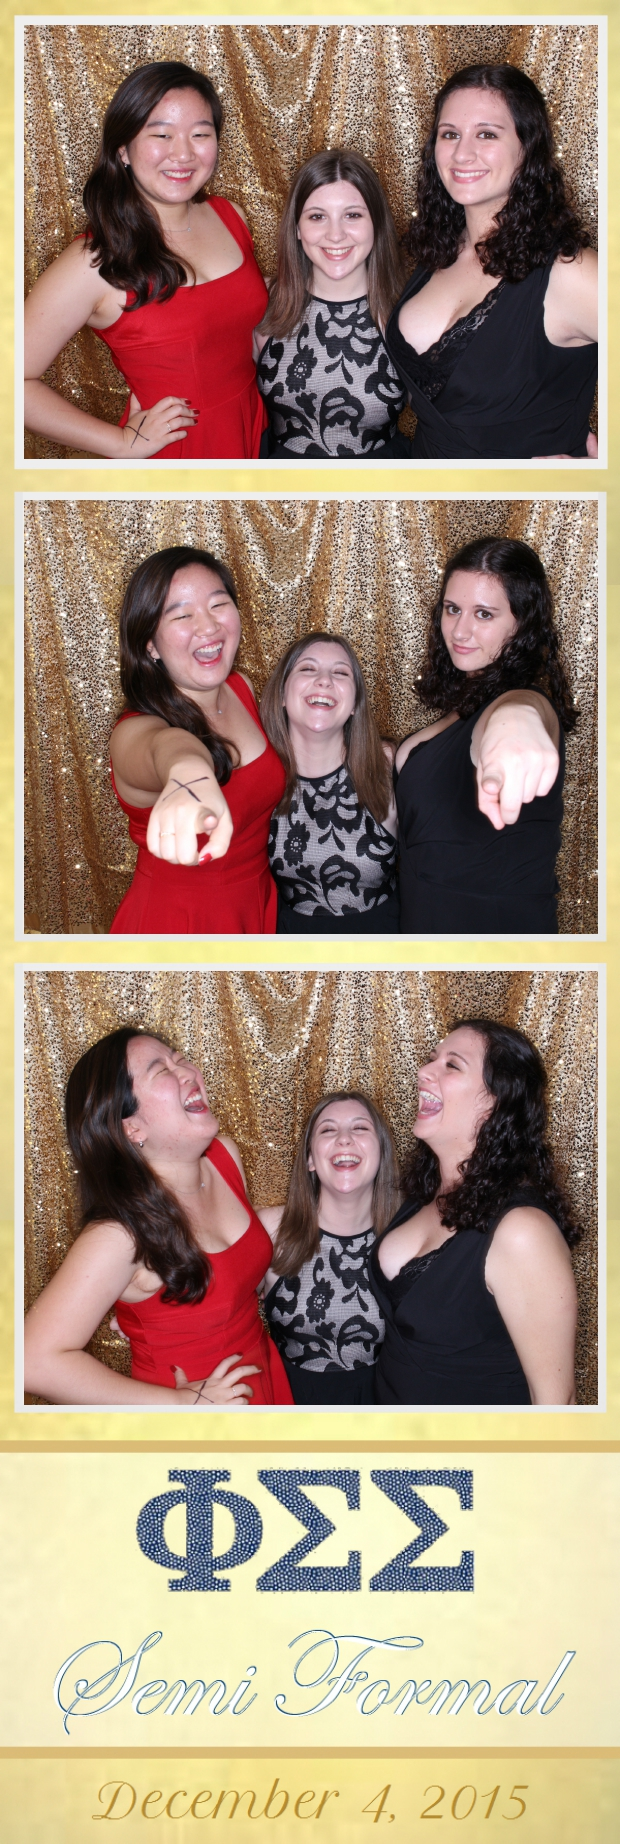 Guest House Events Photo Booth Phi Sigma Sigma Semi Formal (73).jpg